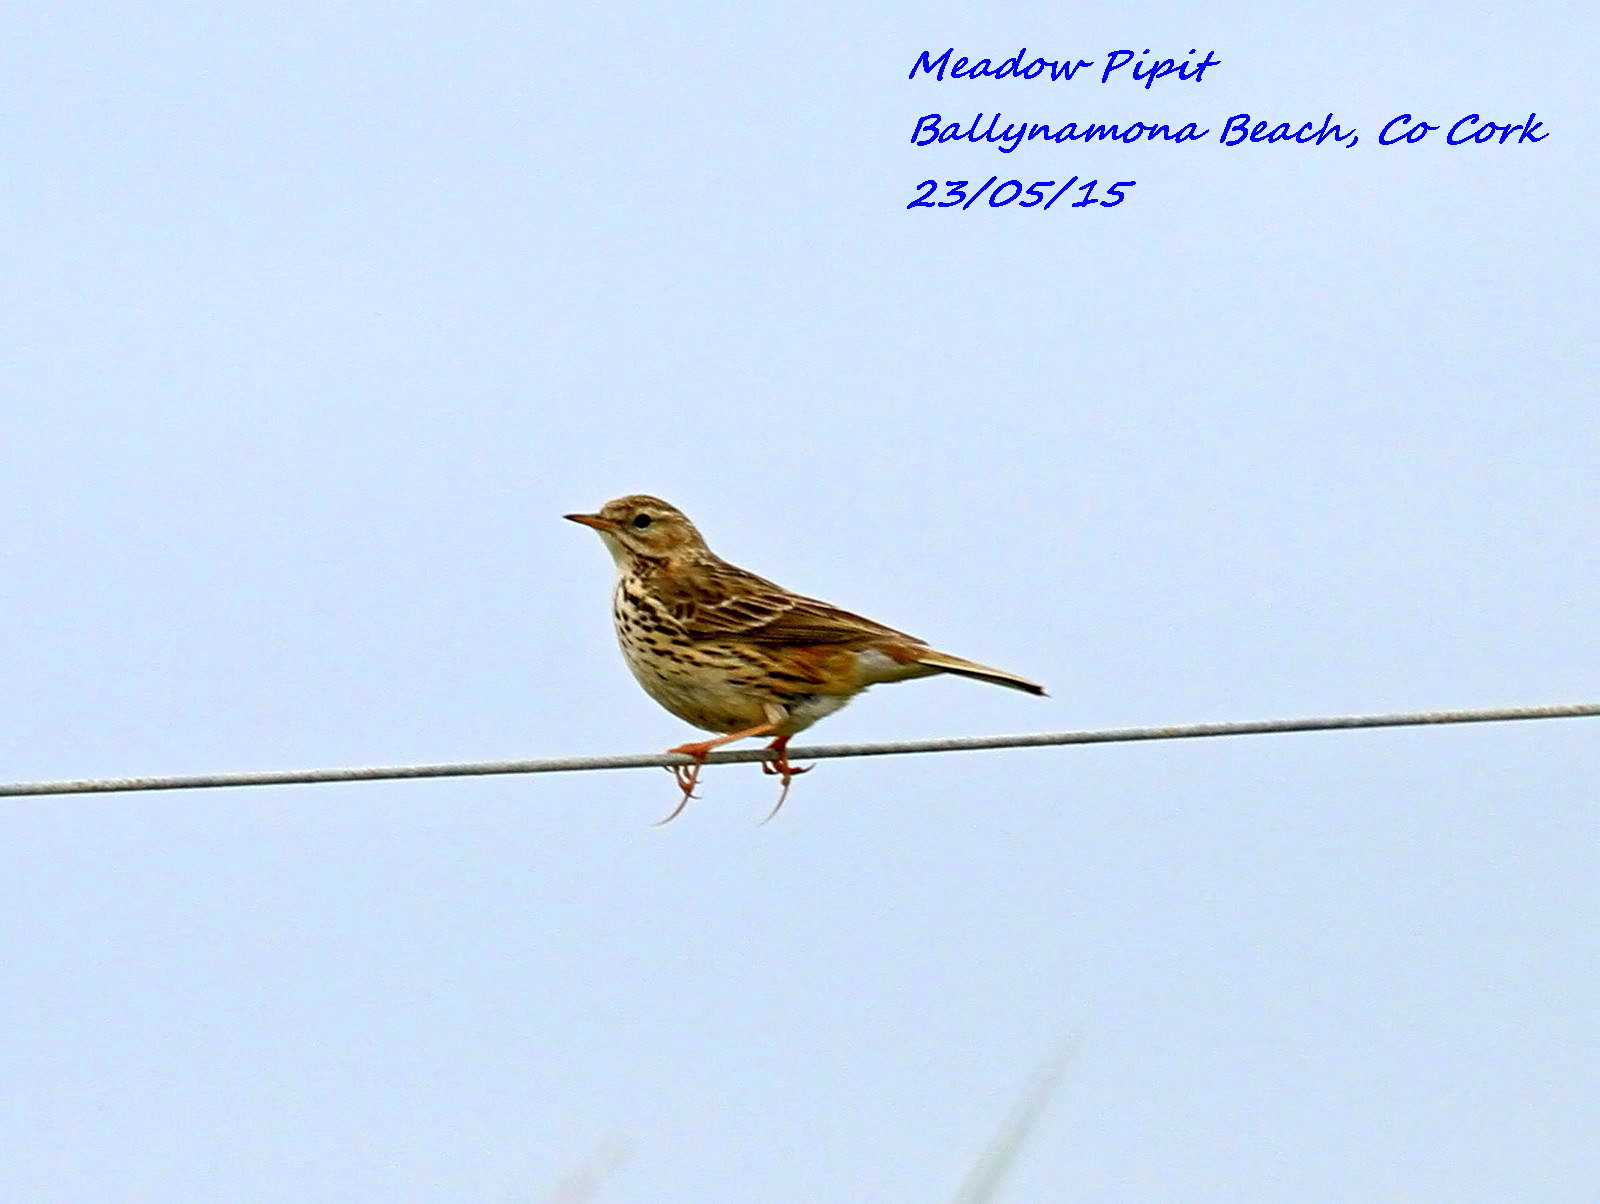 Meadow Pipit 5